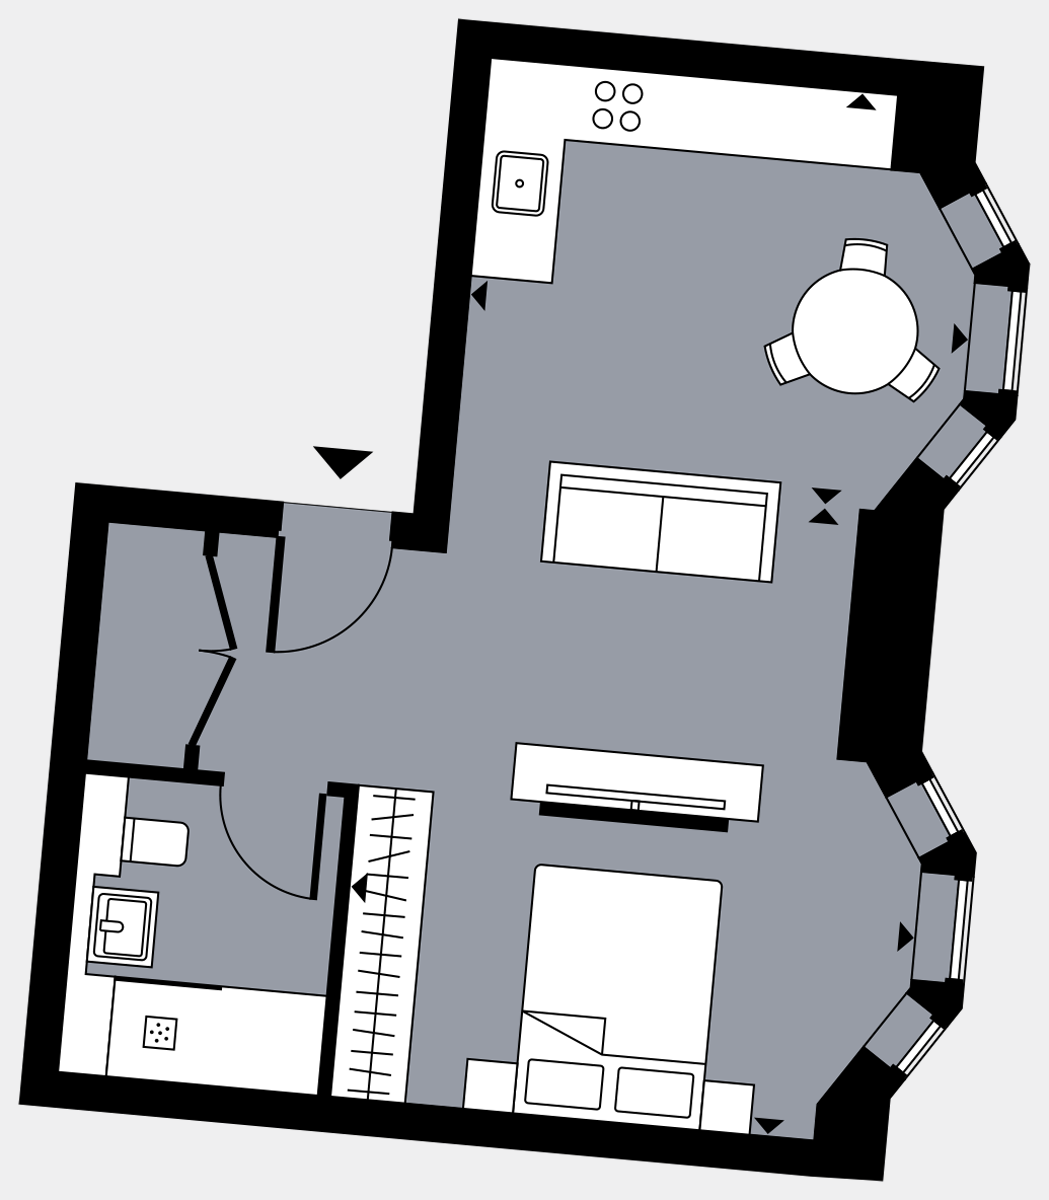 Brigade Court London SE1 Apartment floorplan - L2 18 Davies House